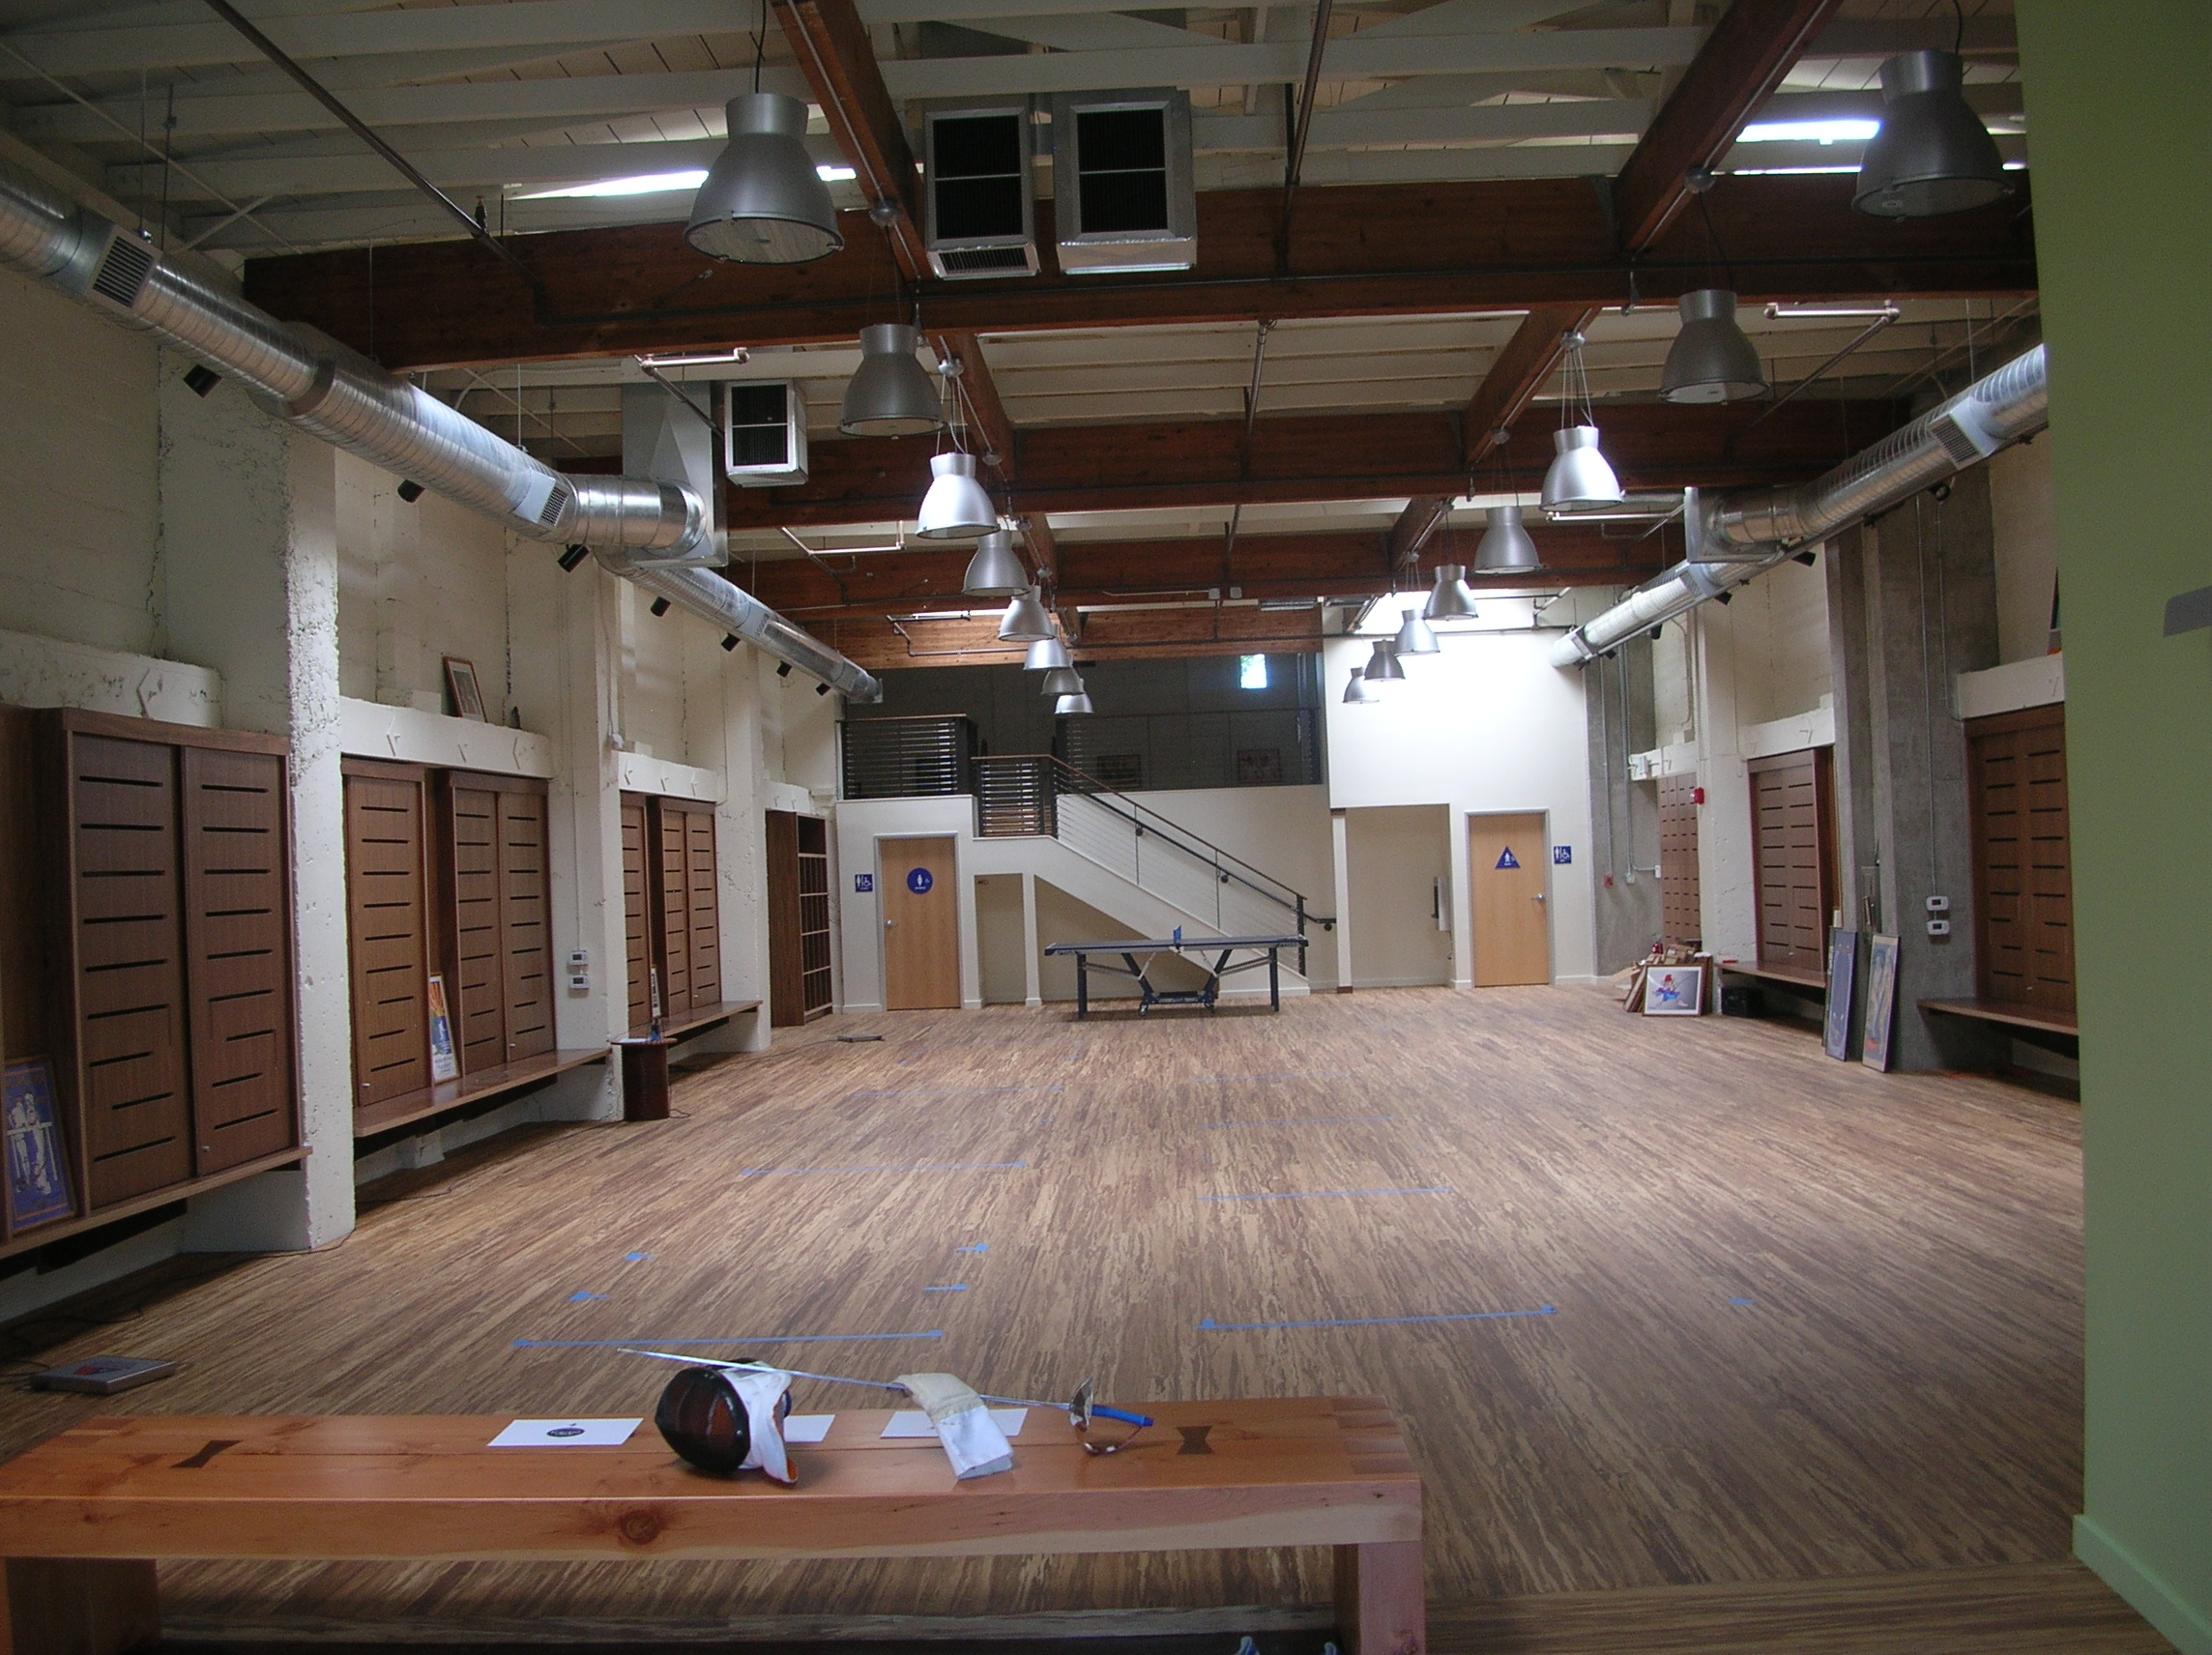 Fencing Club Interior 1 (high res)